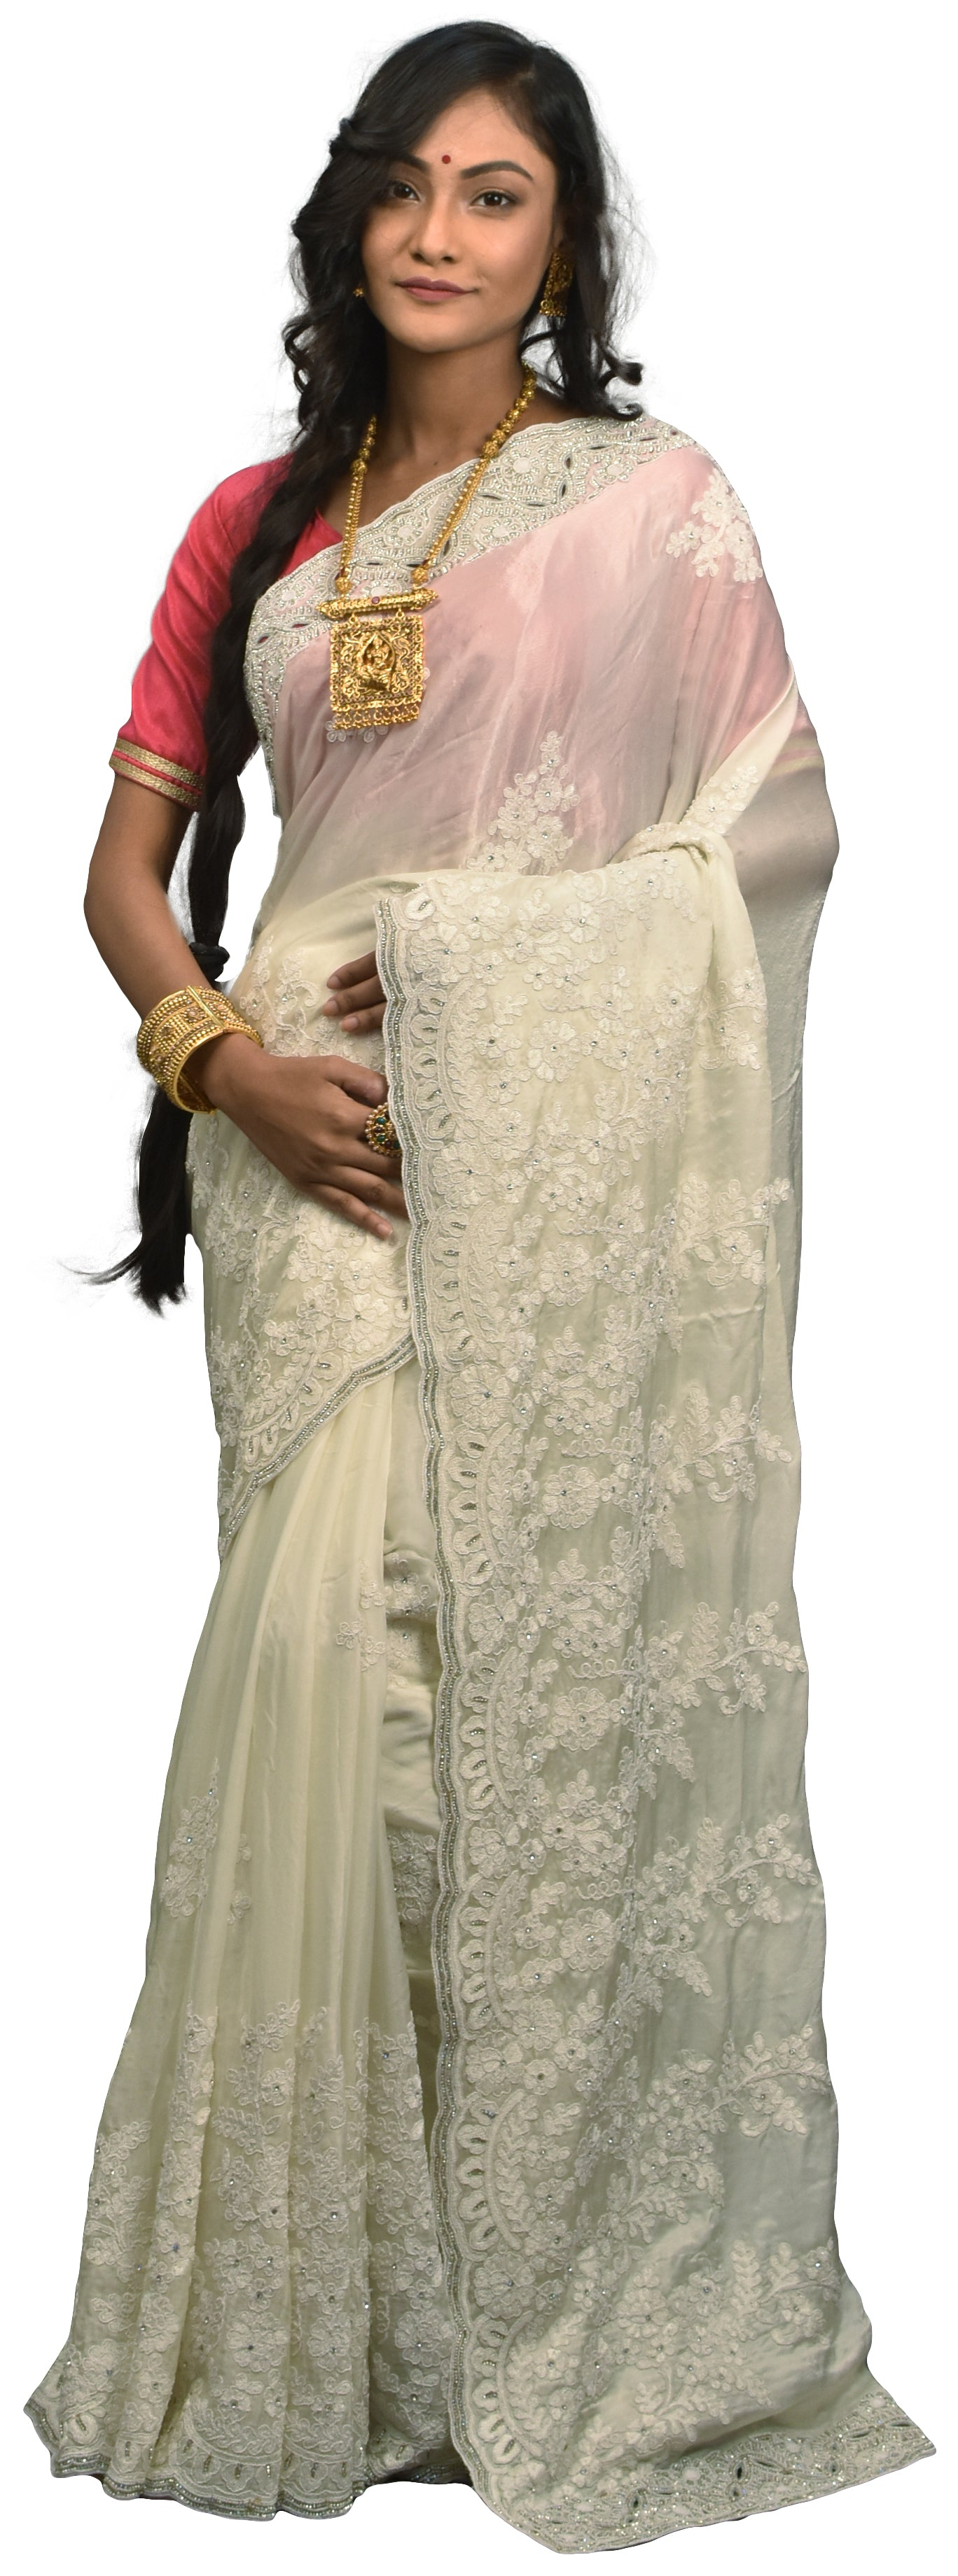 SMSAREE White Designer Wedding Partywear Crepe (Chinon) Thread Stone & Beads Hand Embroidery Work Bridal Saree Sari With Blouse Piece E630